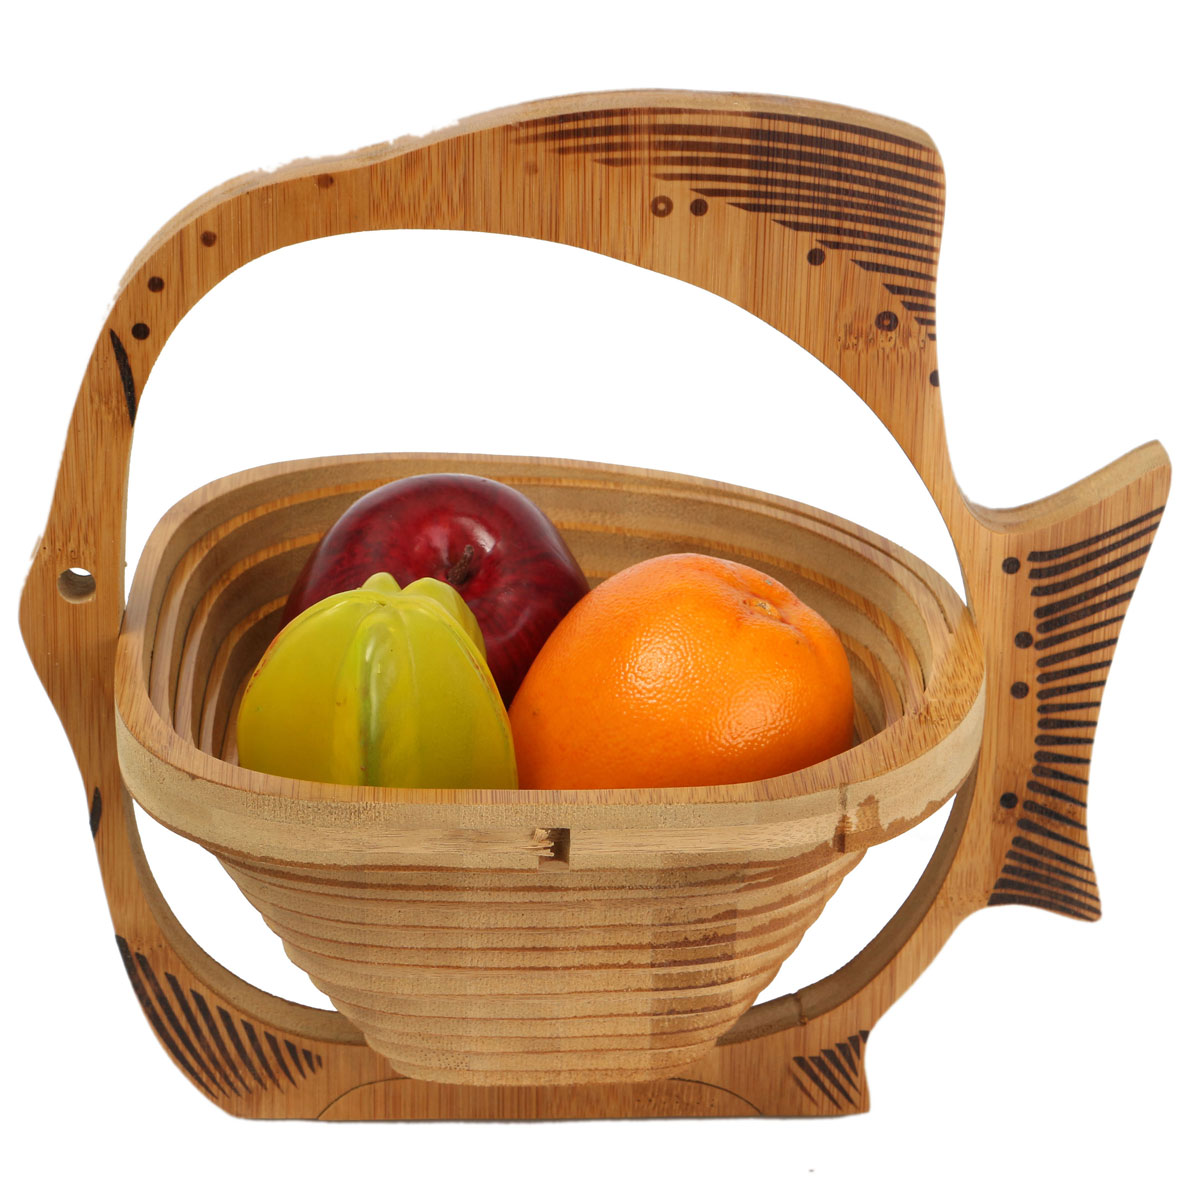 Wooden Folding Fish Shape Wooden Fruit Basket Retro Compote Craft Storage  Board Baskets Holder Home Kitchen Gift Decor Portable-in Storage Baskets  from Home ...